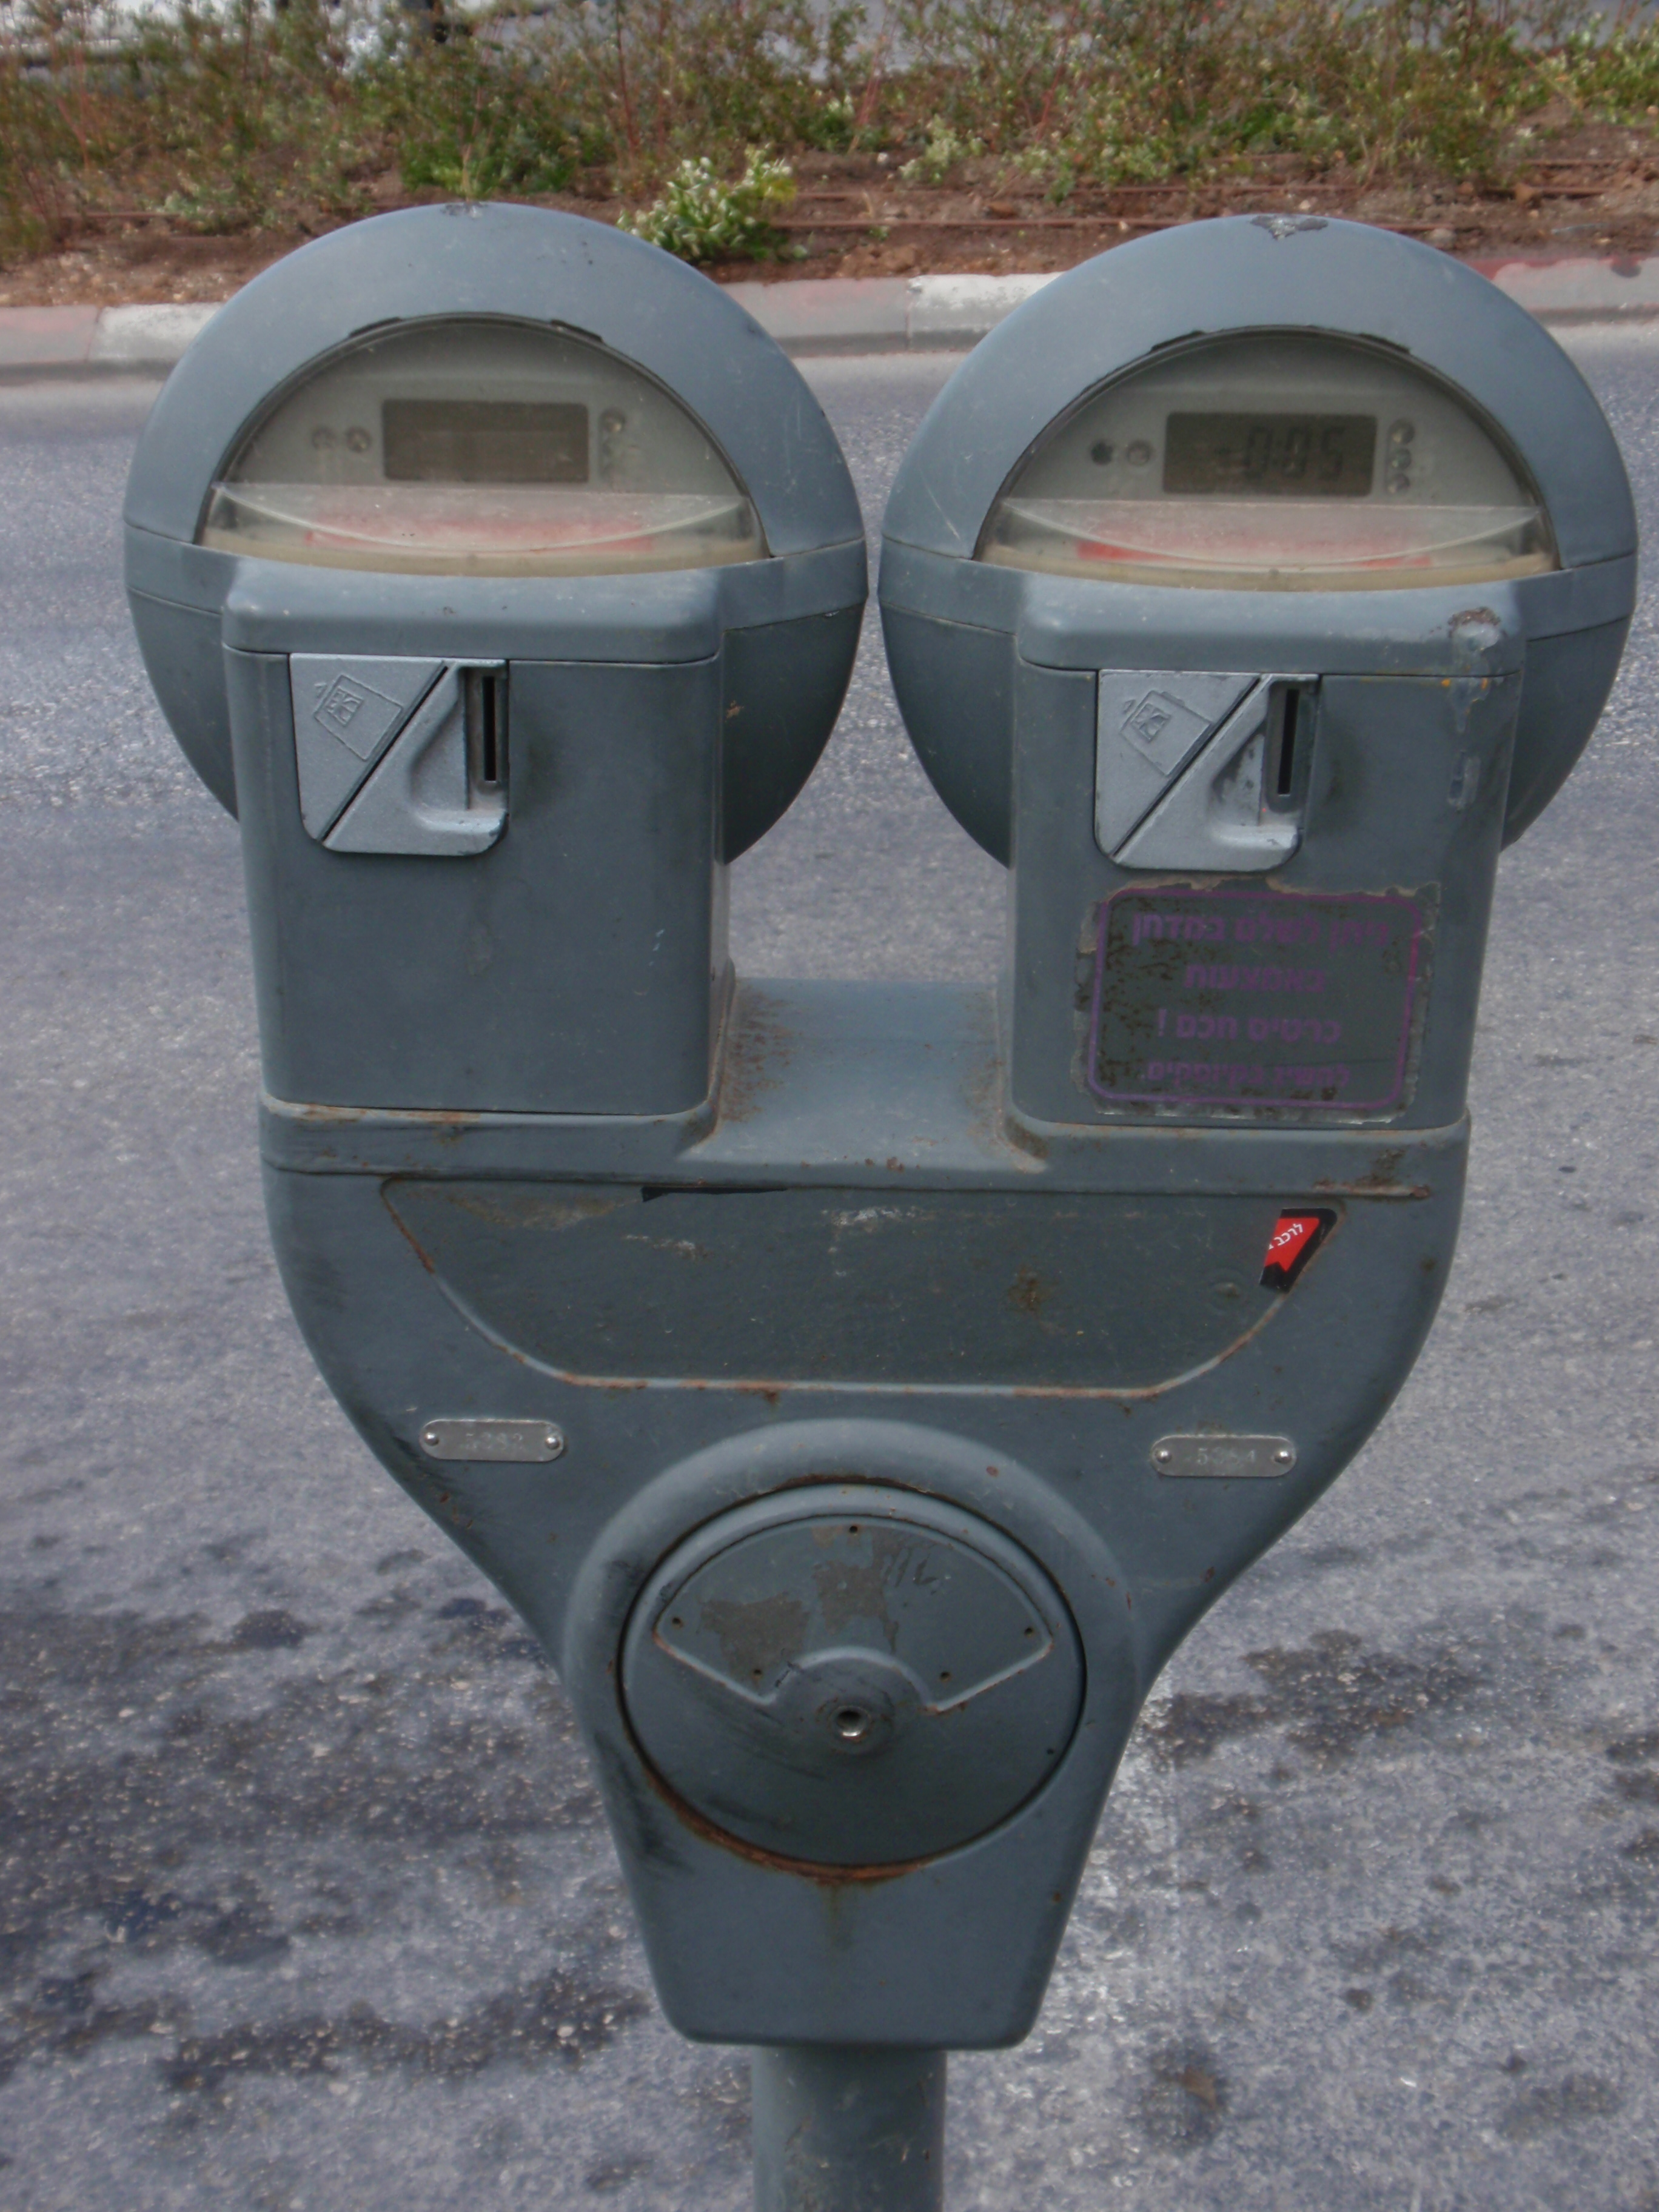 Parking Meters And Electric Cars